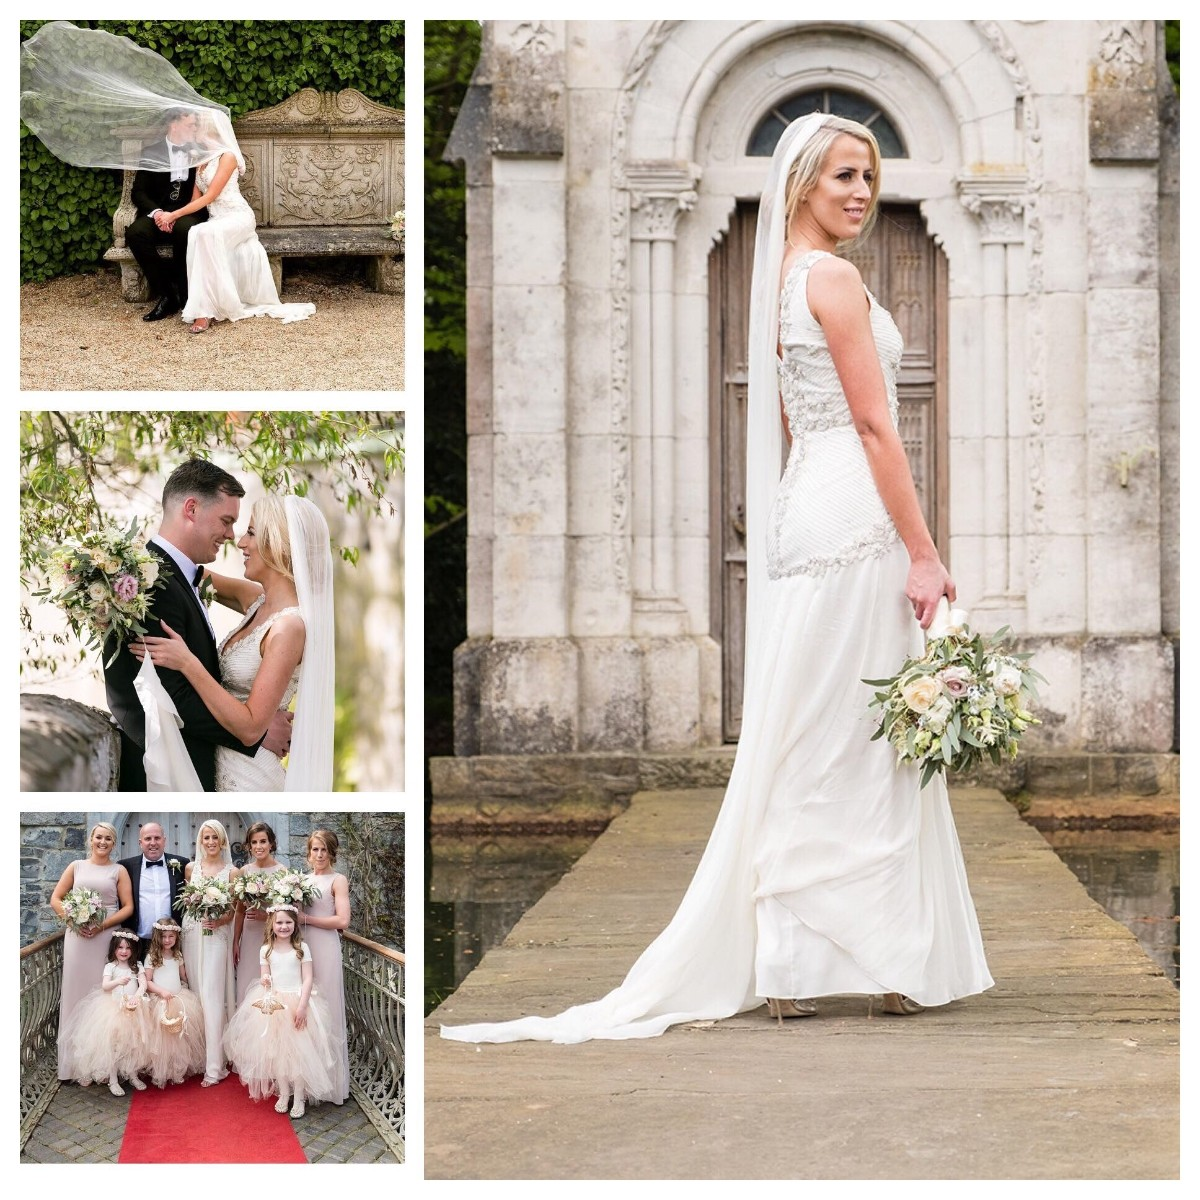 b5564a029bf Finesse Weddings - Understated Elegance - Chair Covers - Planners ...